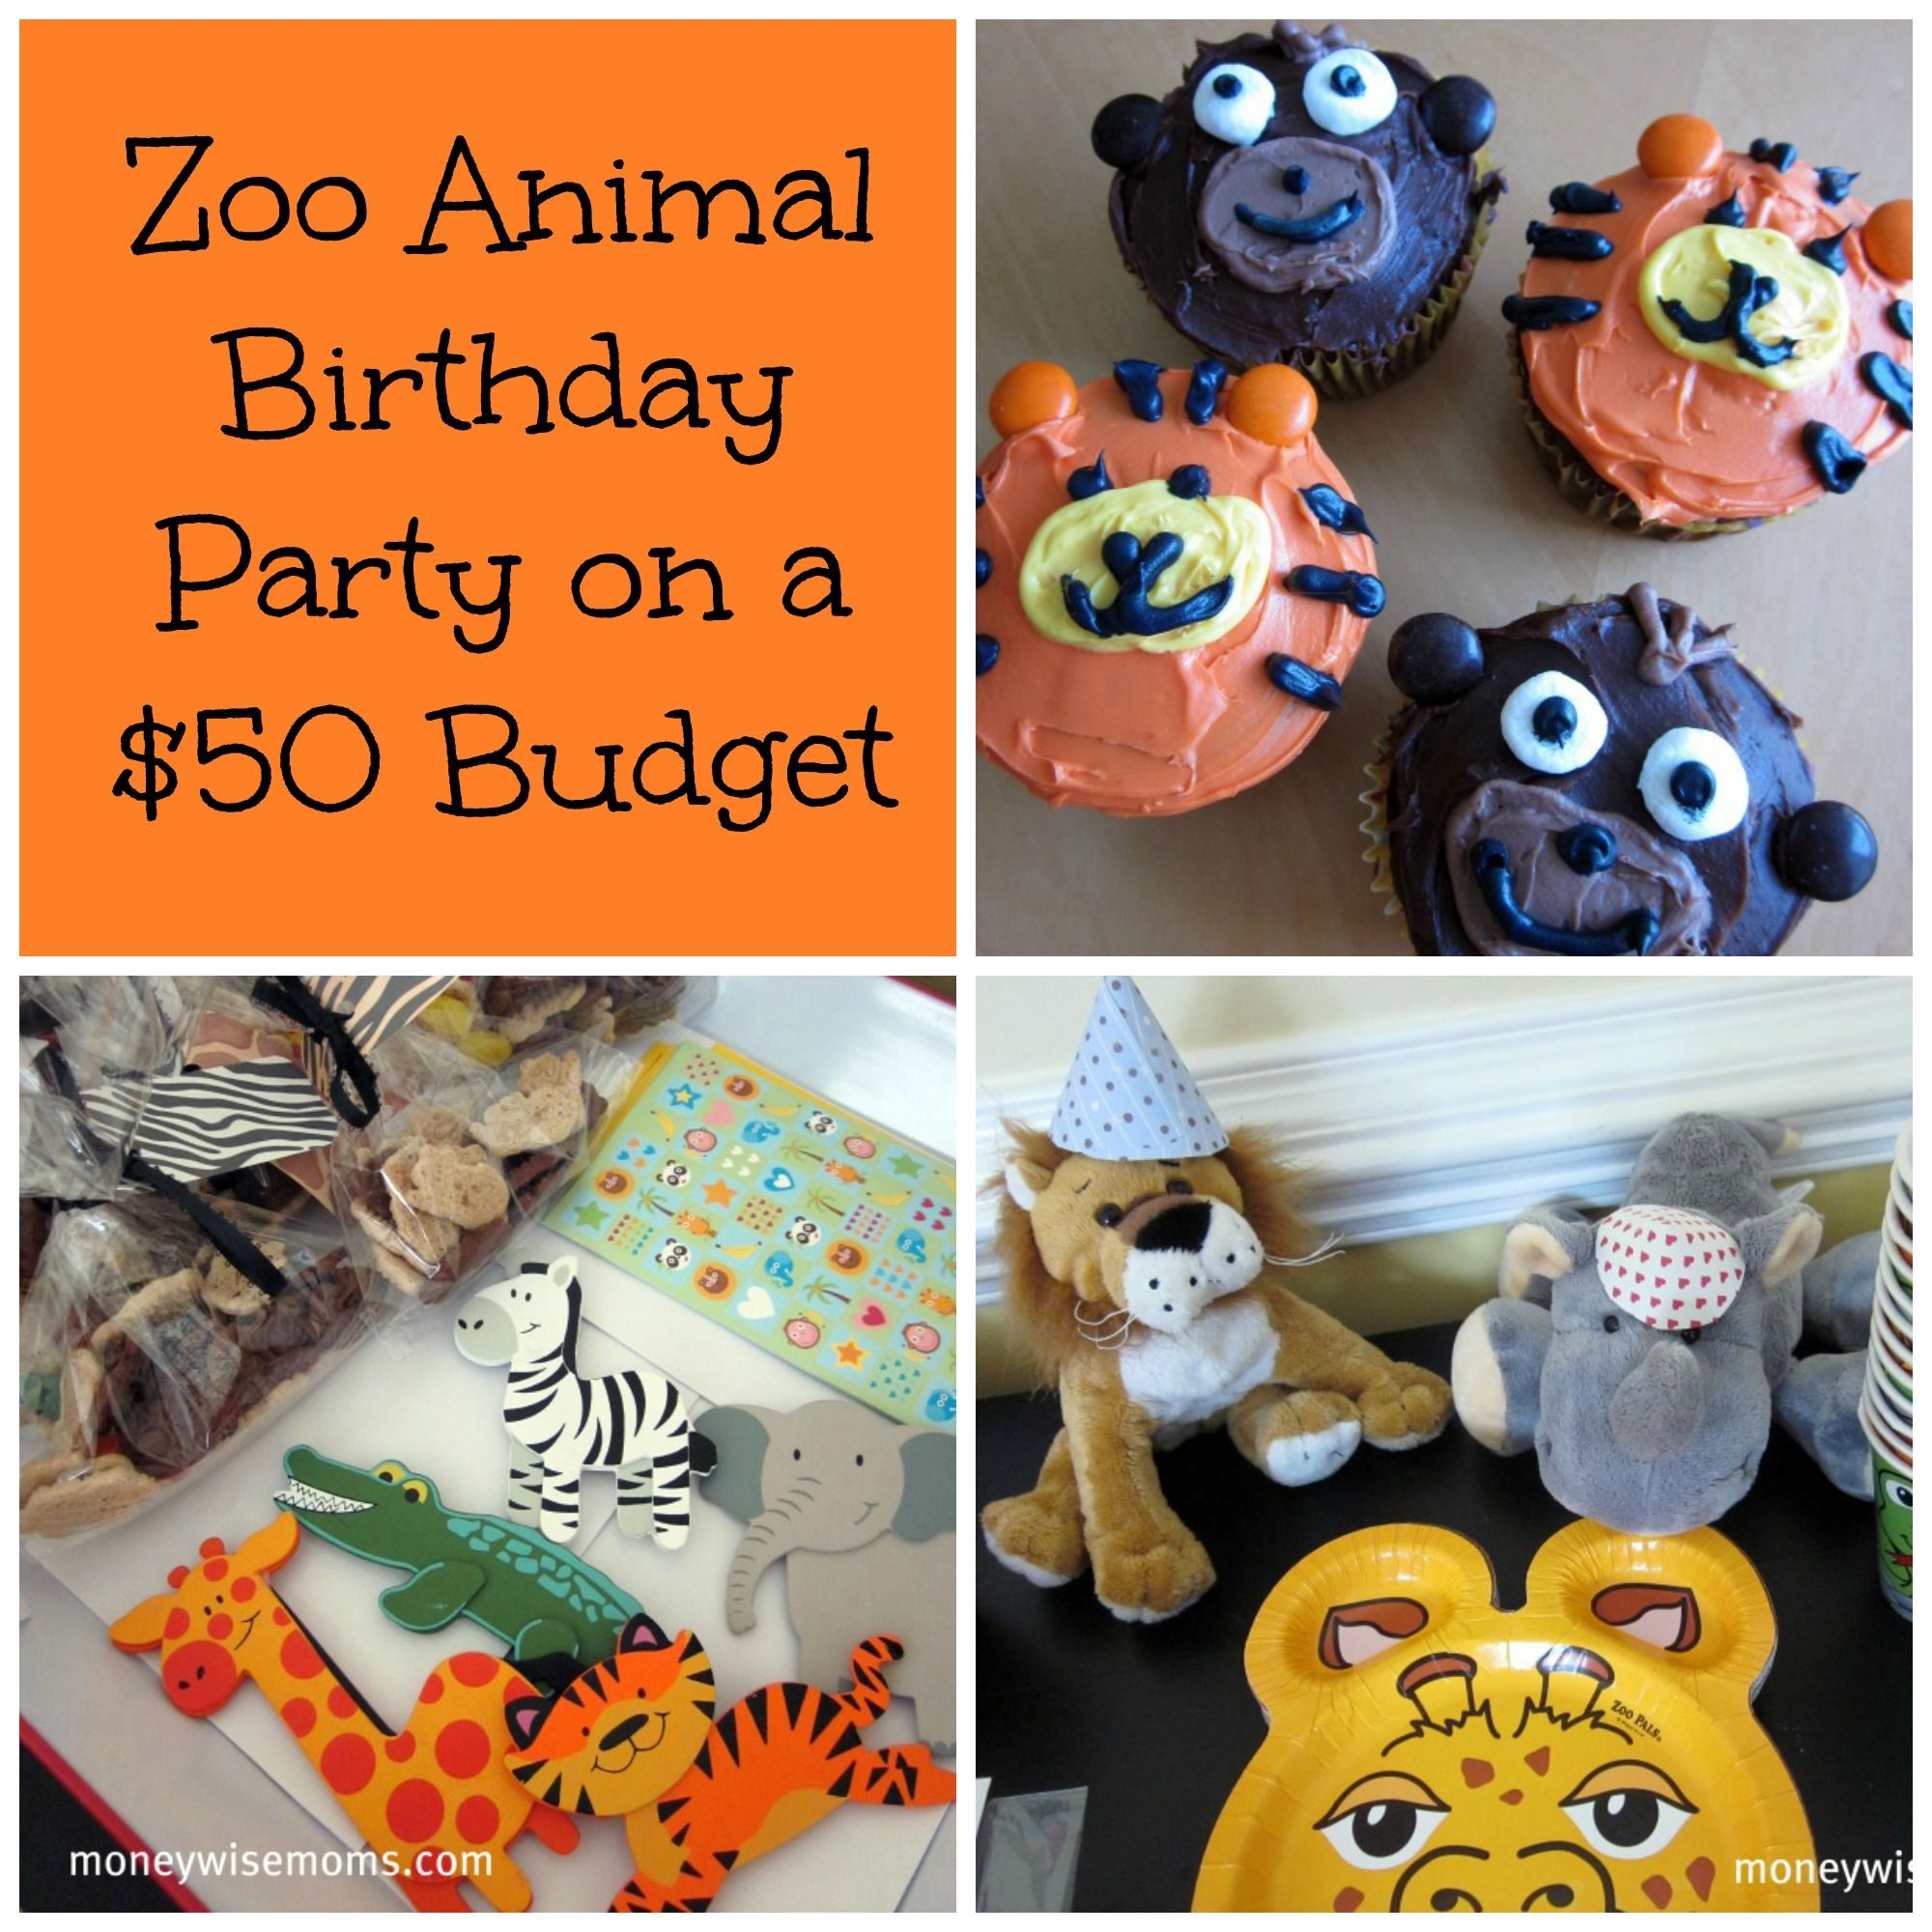 Zoo Animal Birthday Party On $50 Budget